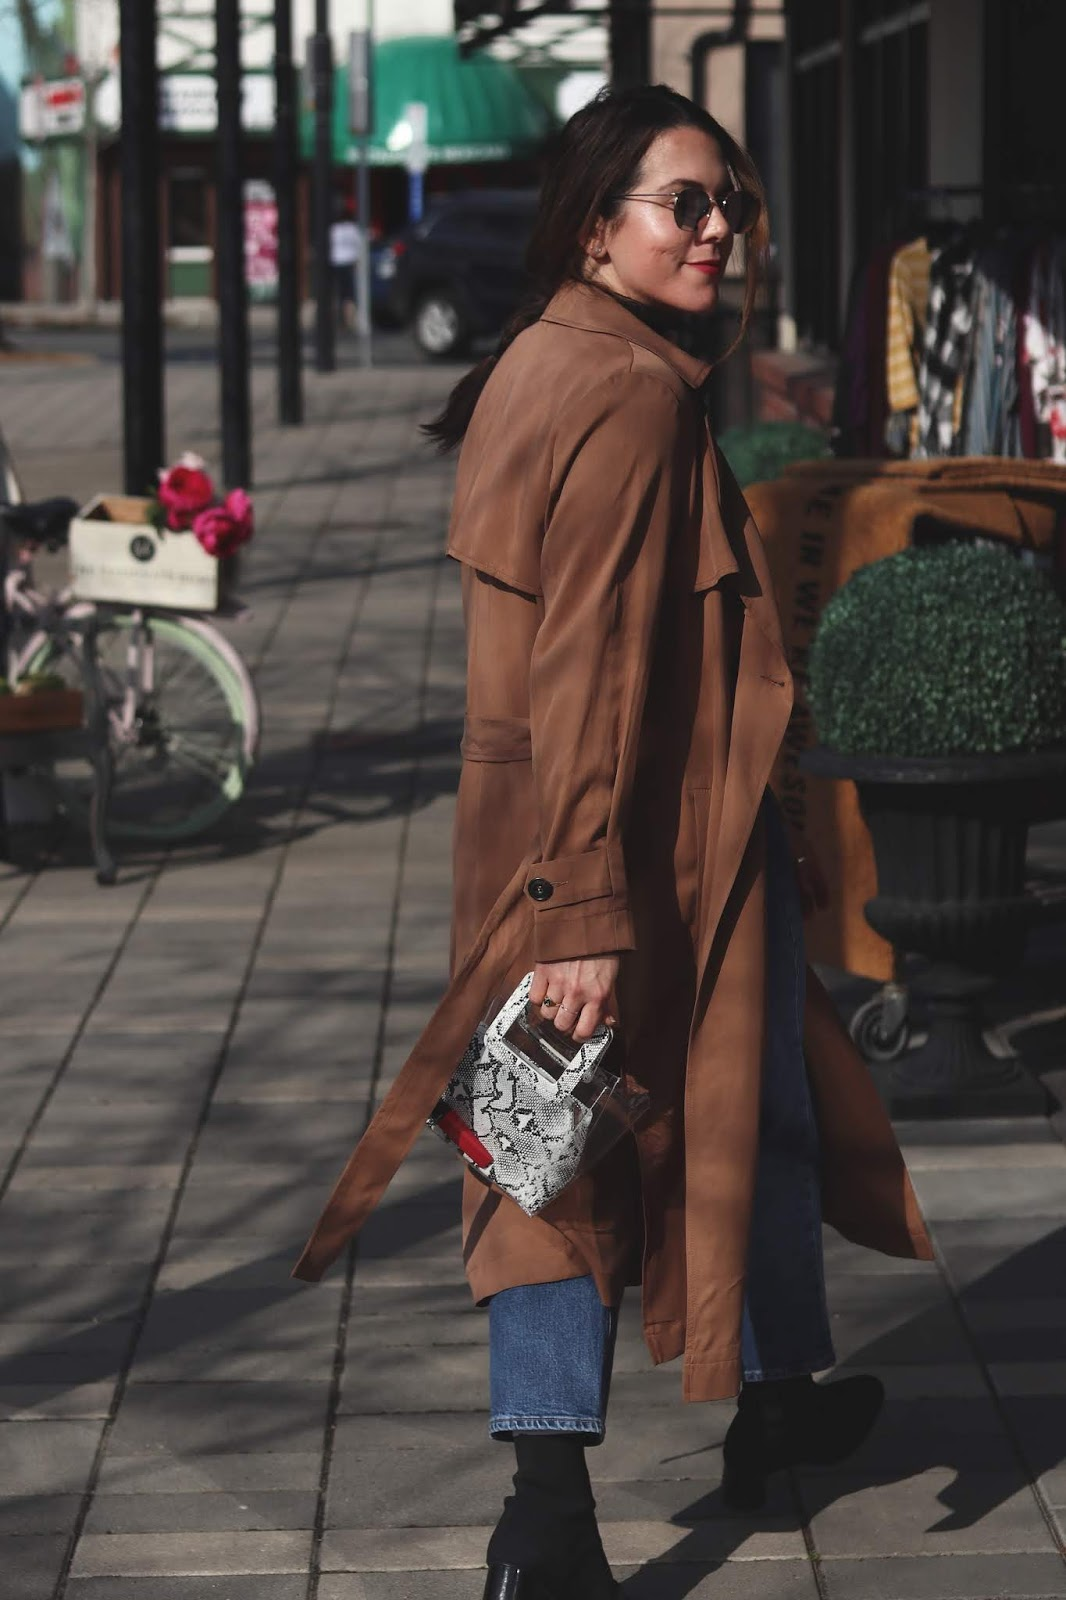 Le Chateau trench coat spring outfit idea levi's ribcage jeans bailey nelson sunglasses vancouver blogger